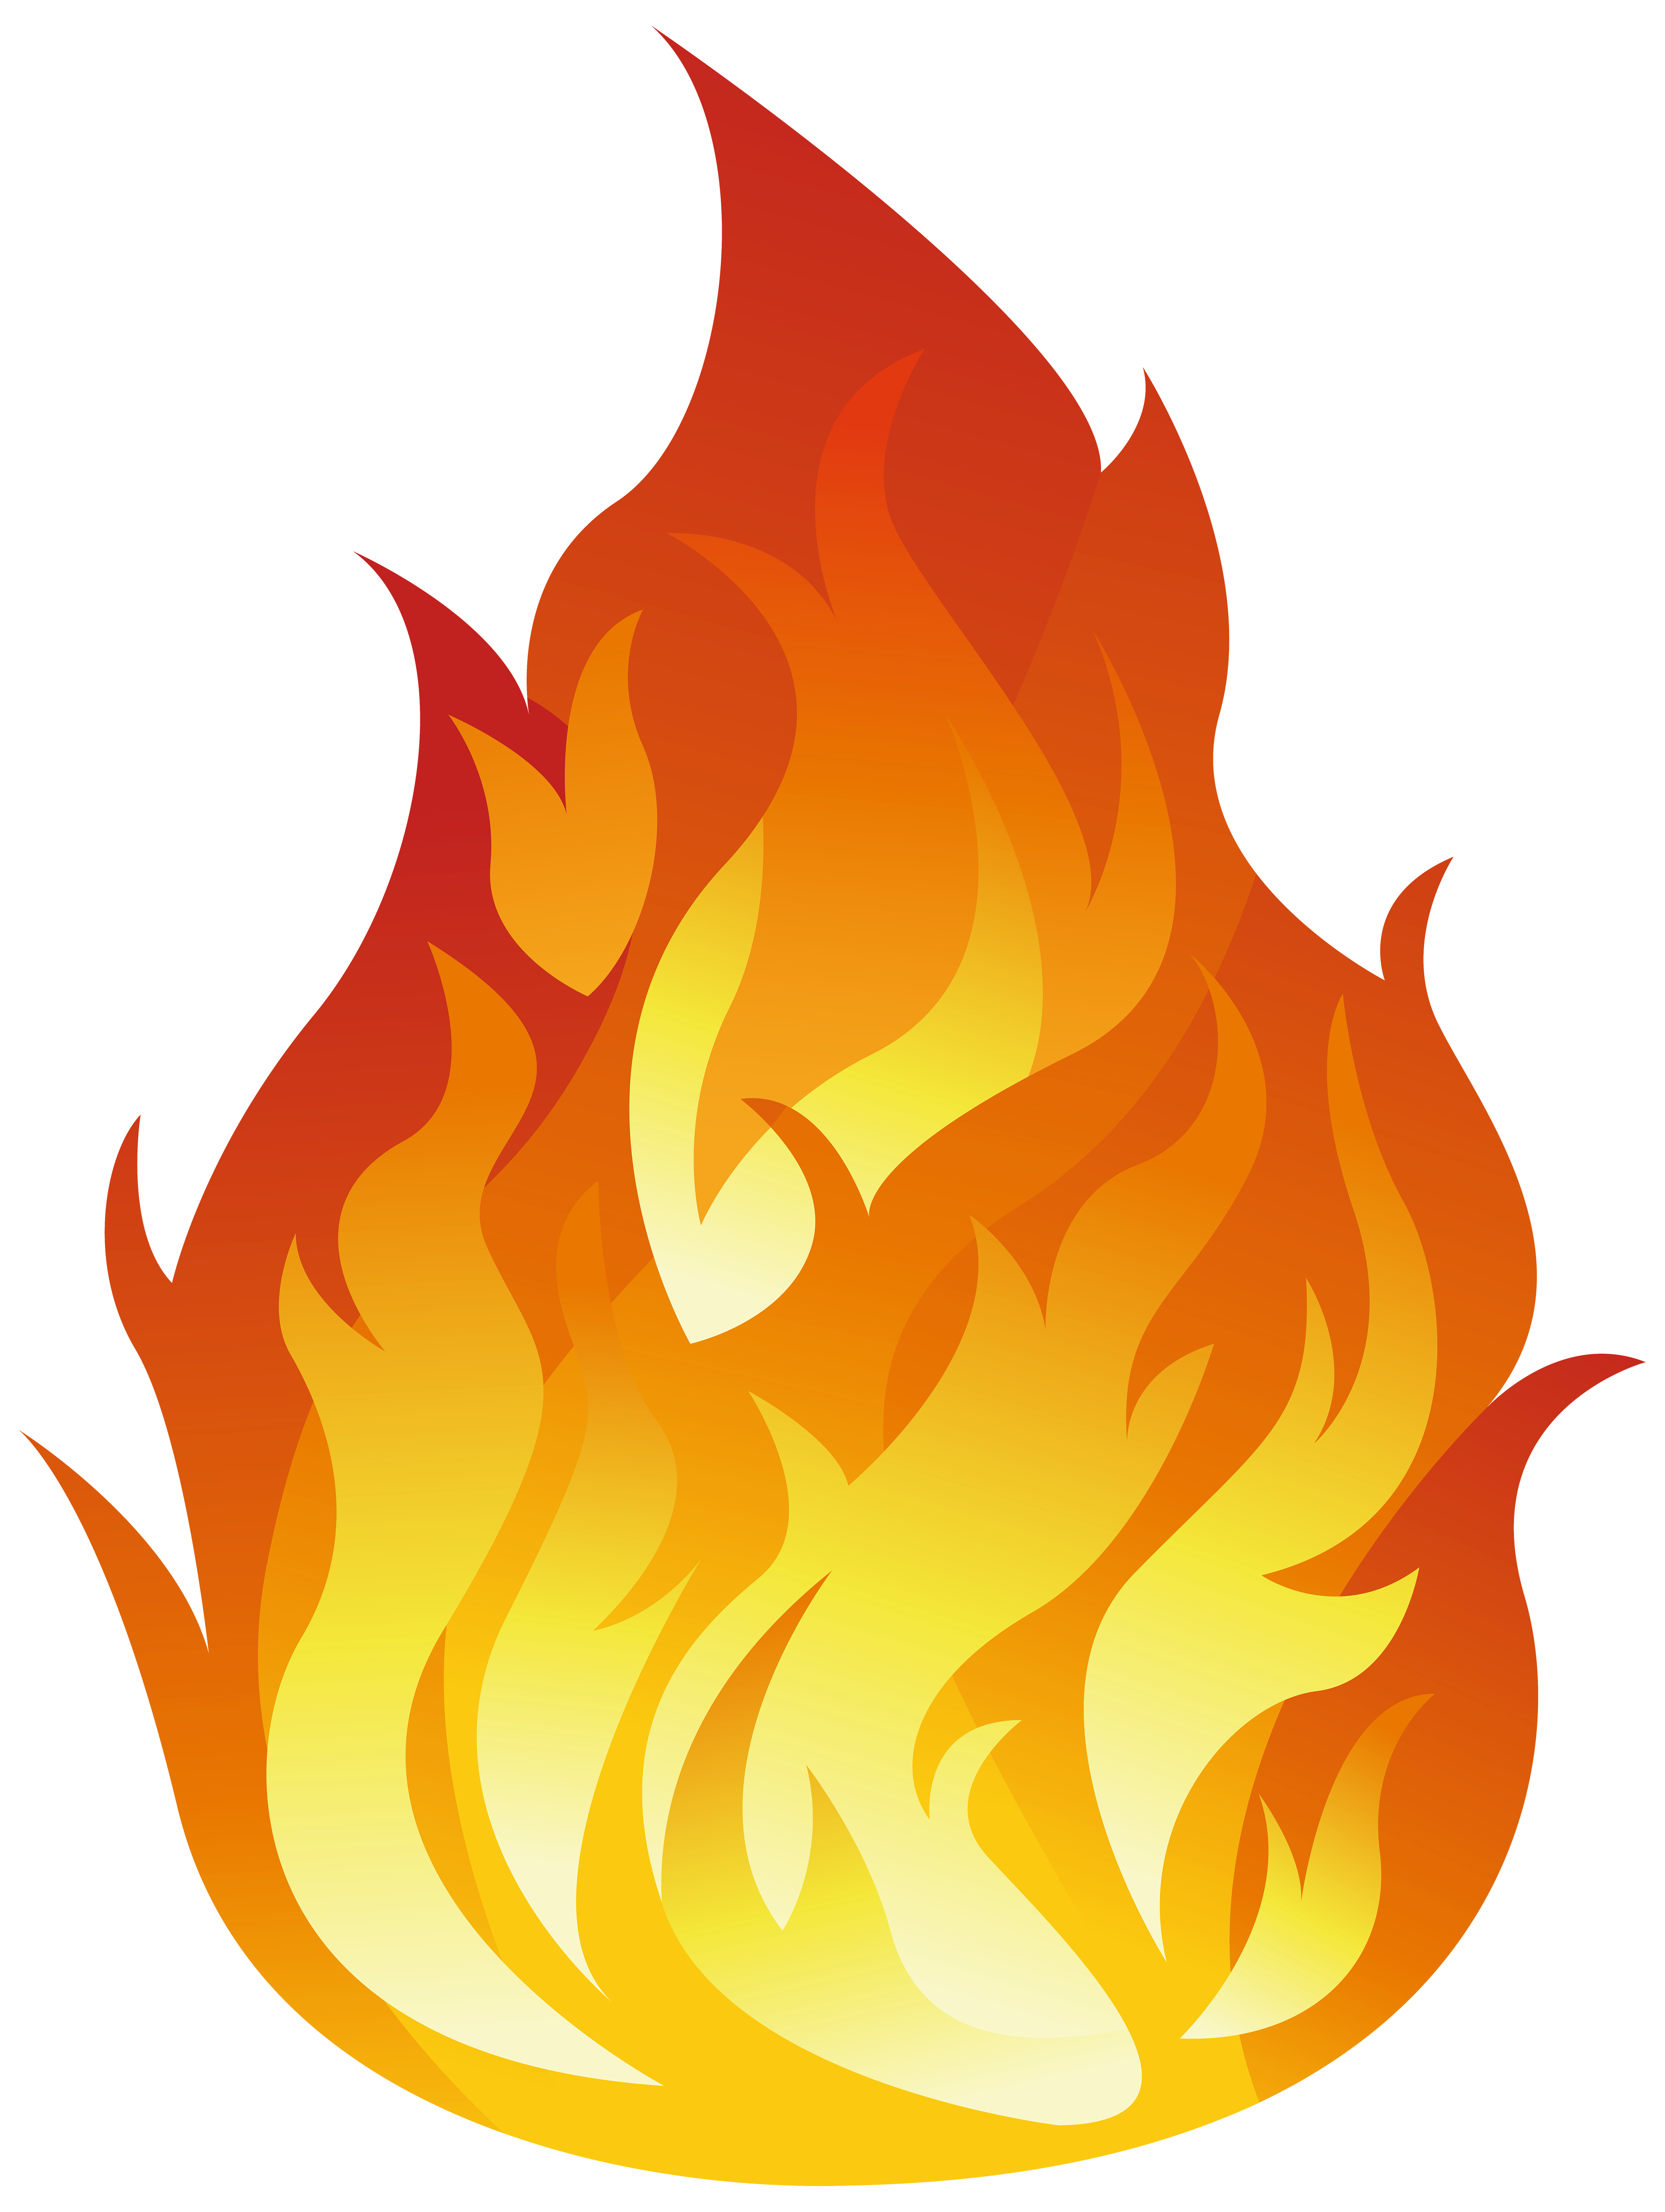 great torch fire. Fireplace clipart fireplace flame